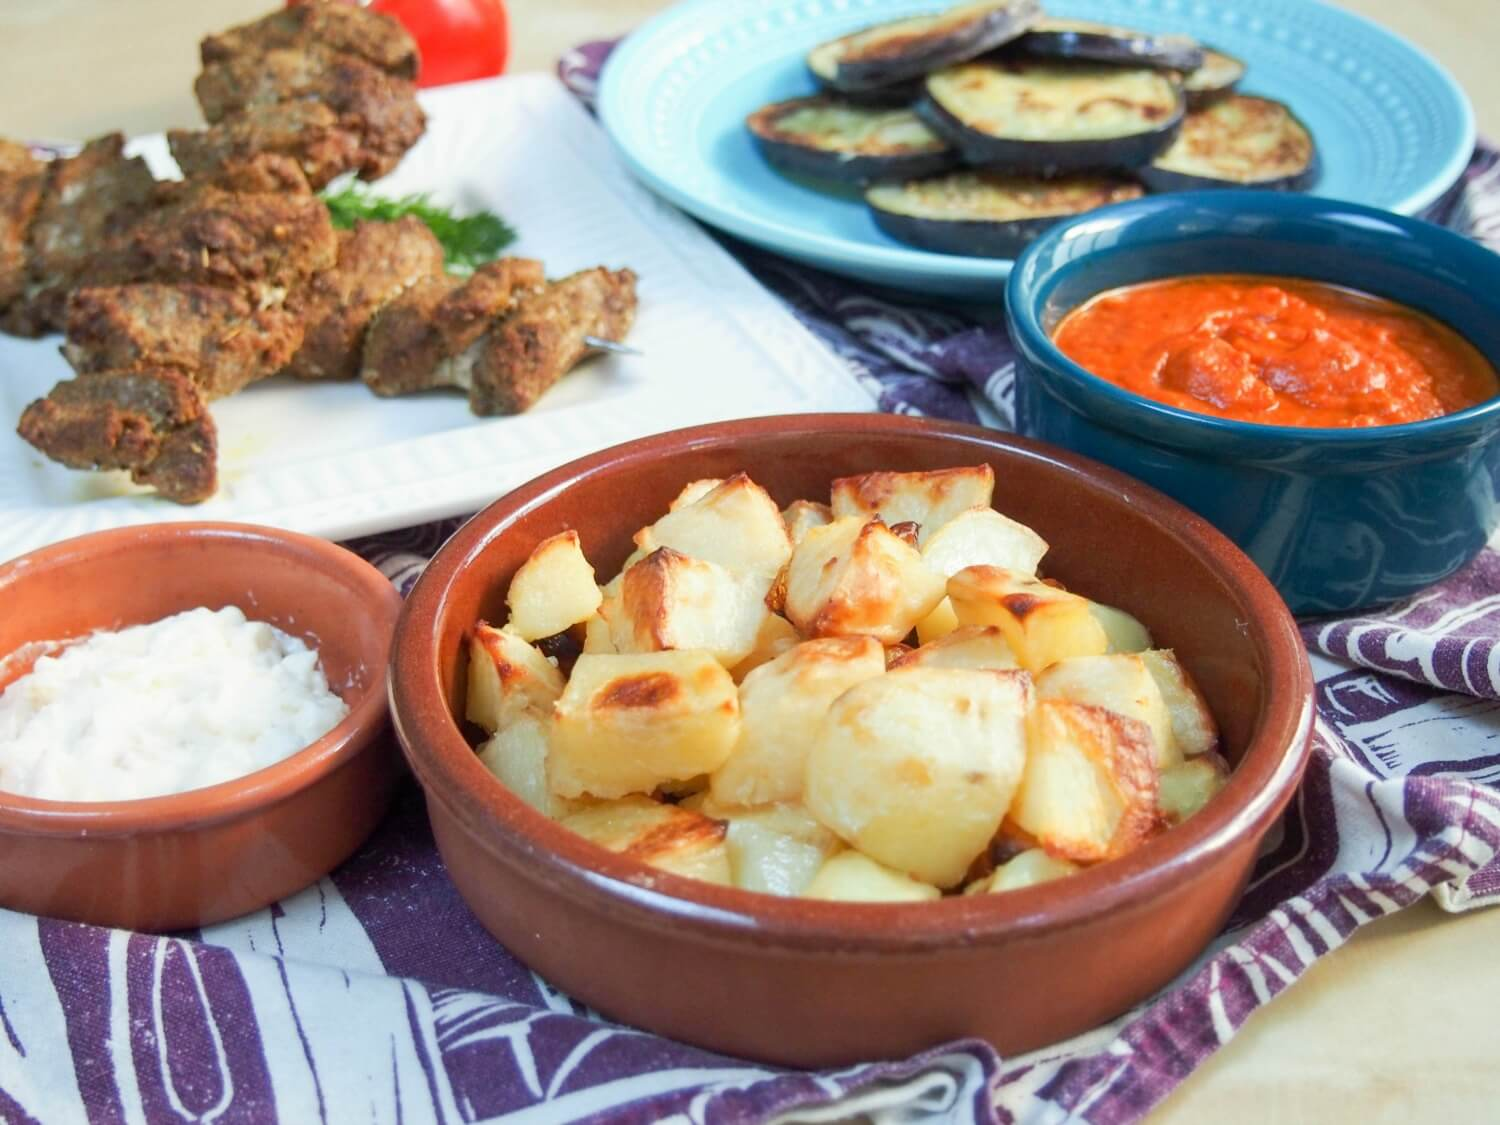 healthier patatas bravas and other dishes